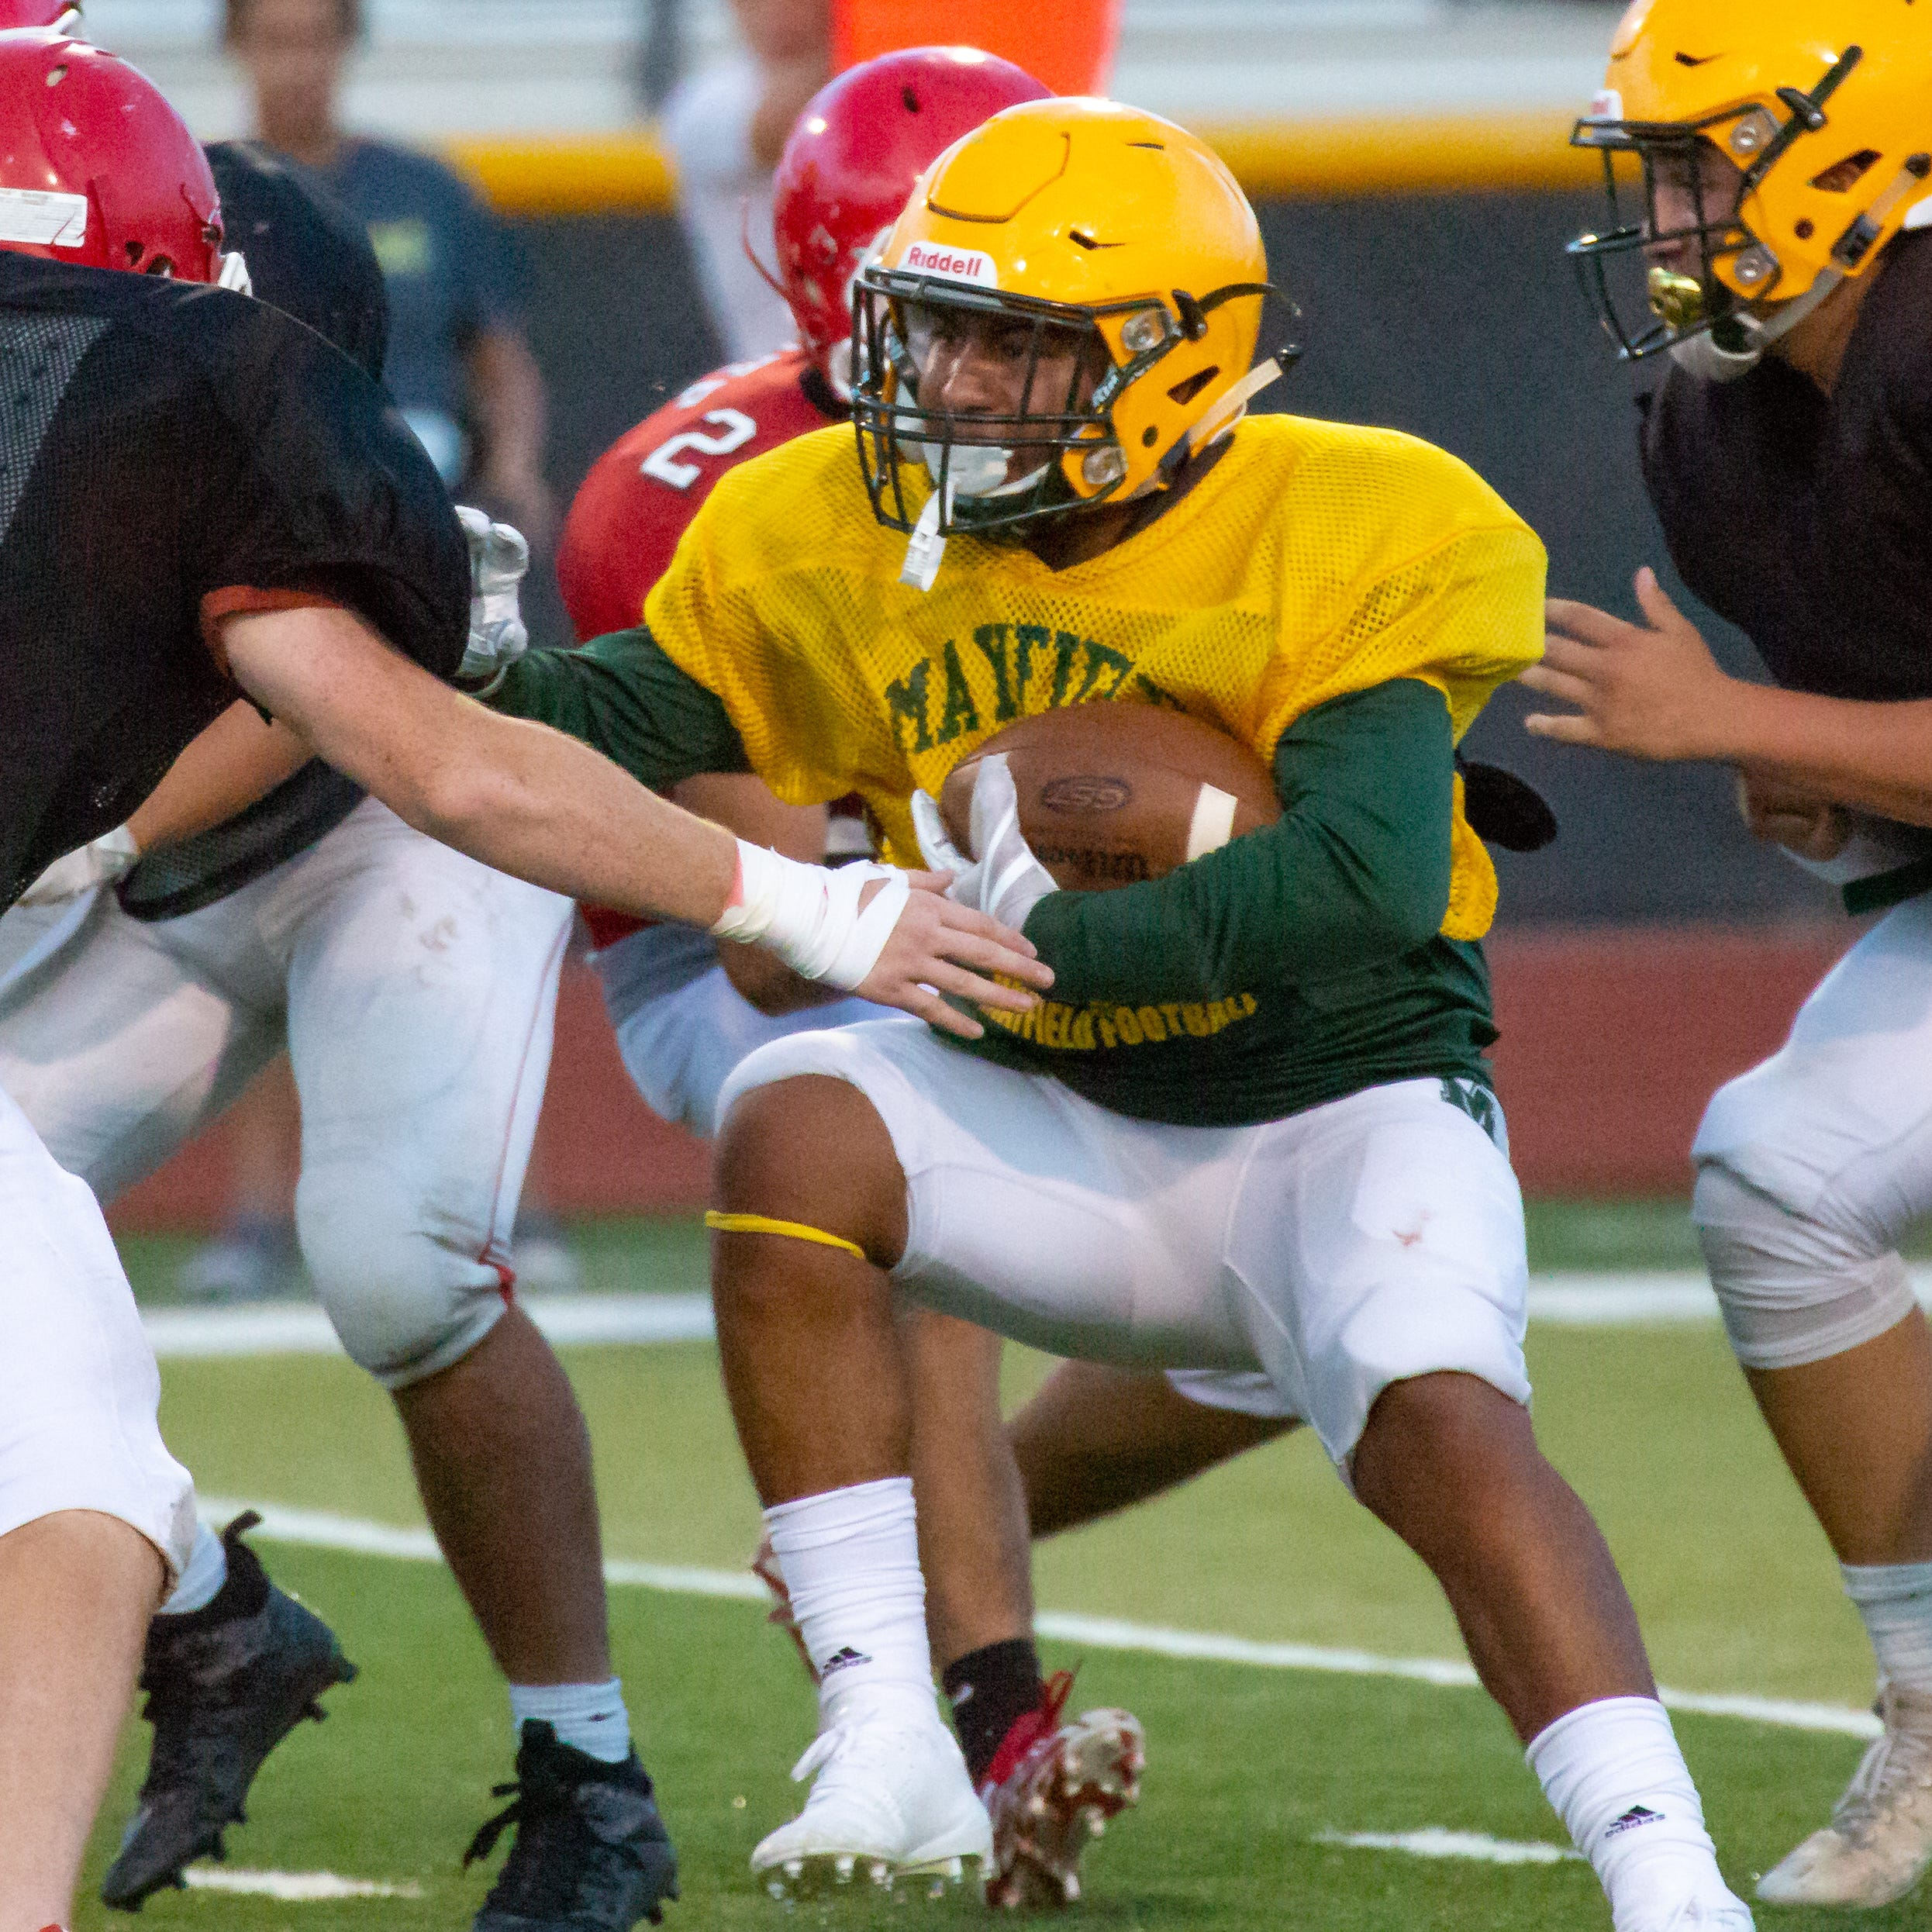 Mayfield football looks to bounce back from 2-8 season